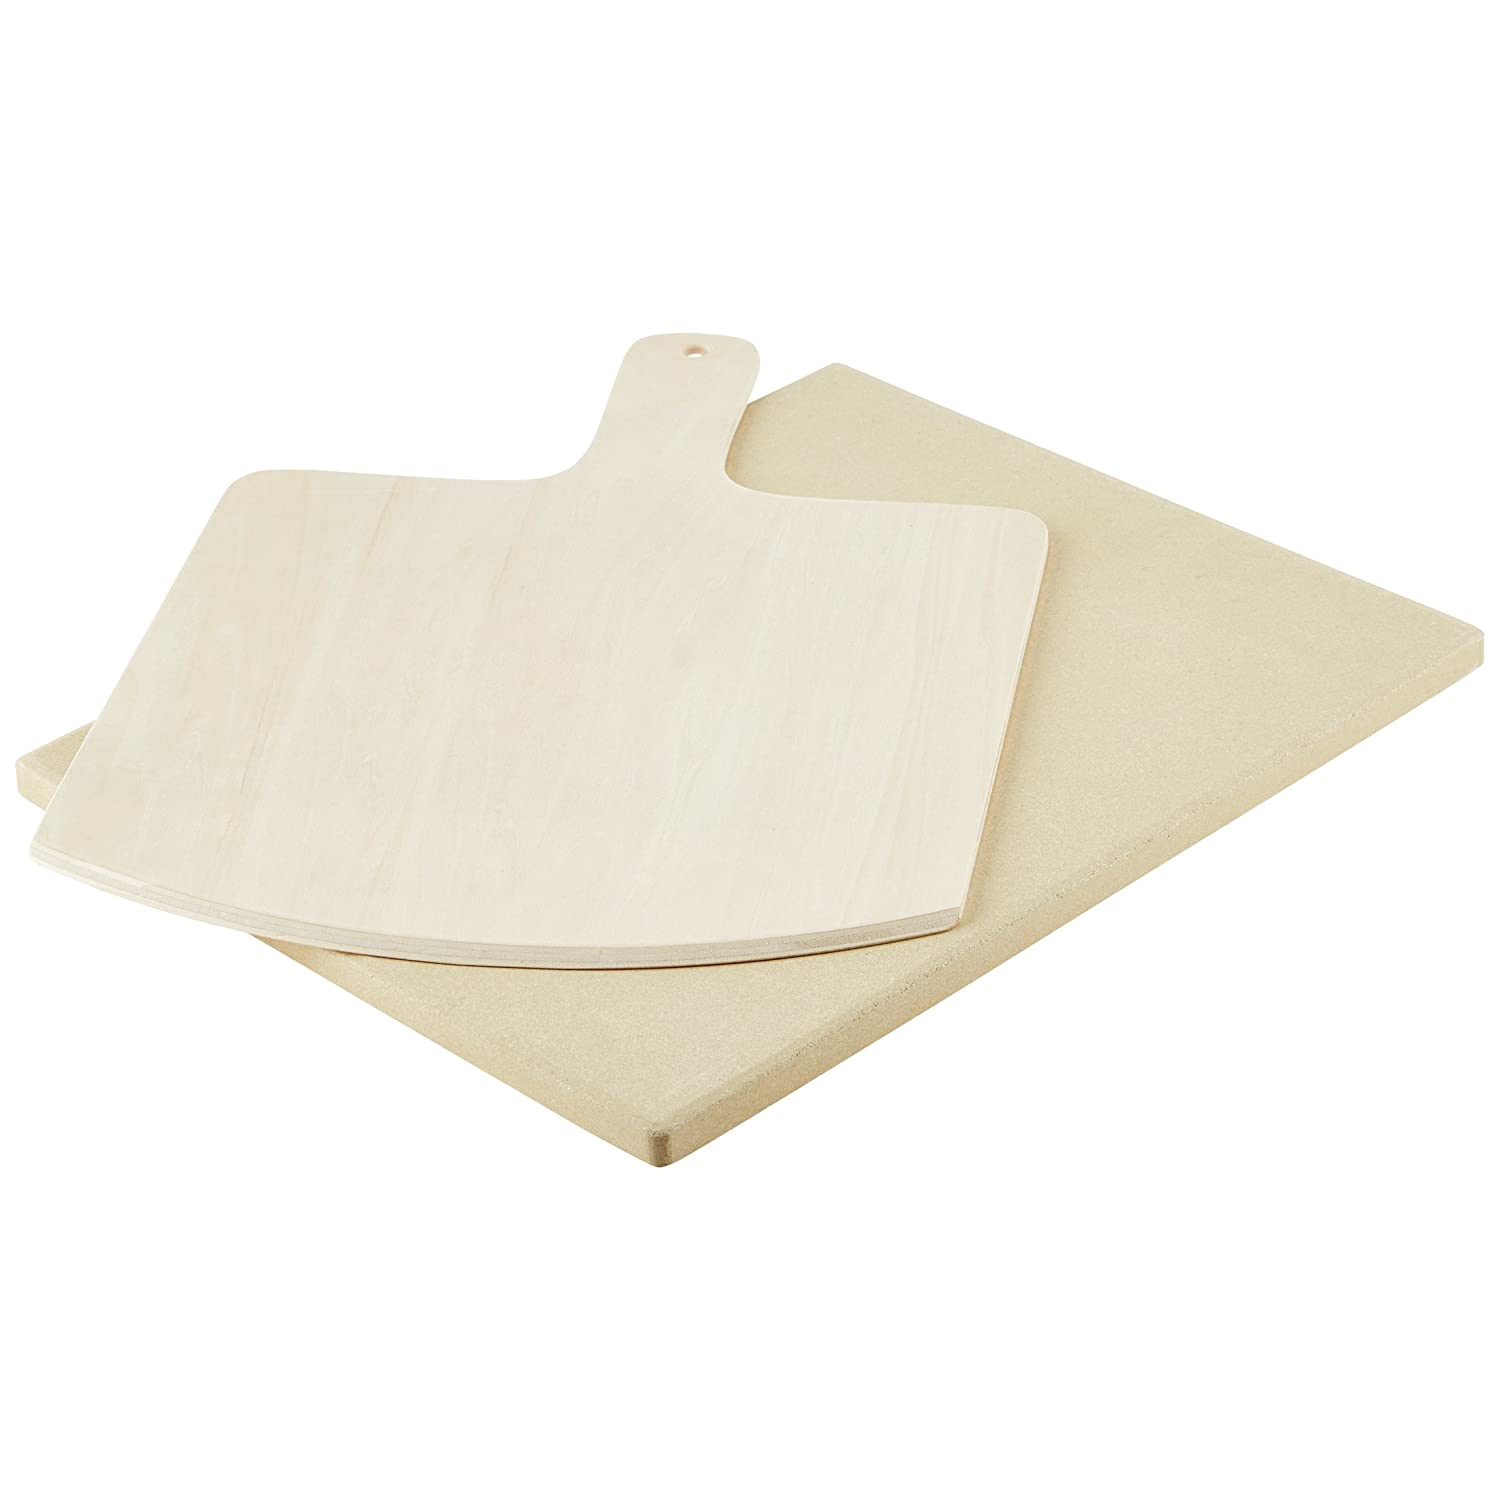 Levivo Pizza Stone / Bread Baking Stone made from heat-resistant cordierite, 30 x 38 x 1.5 cm 331800000103